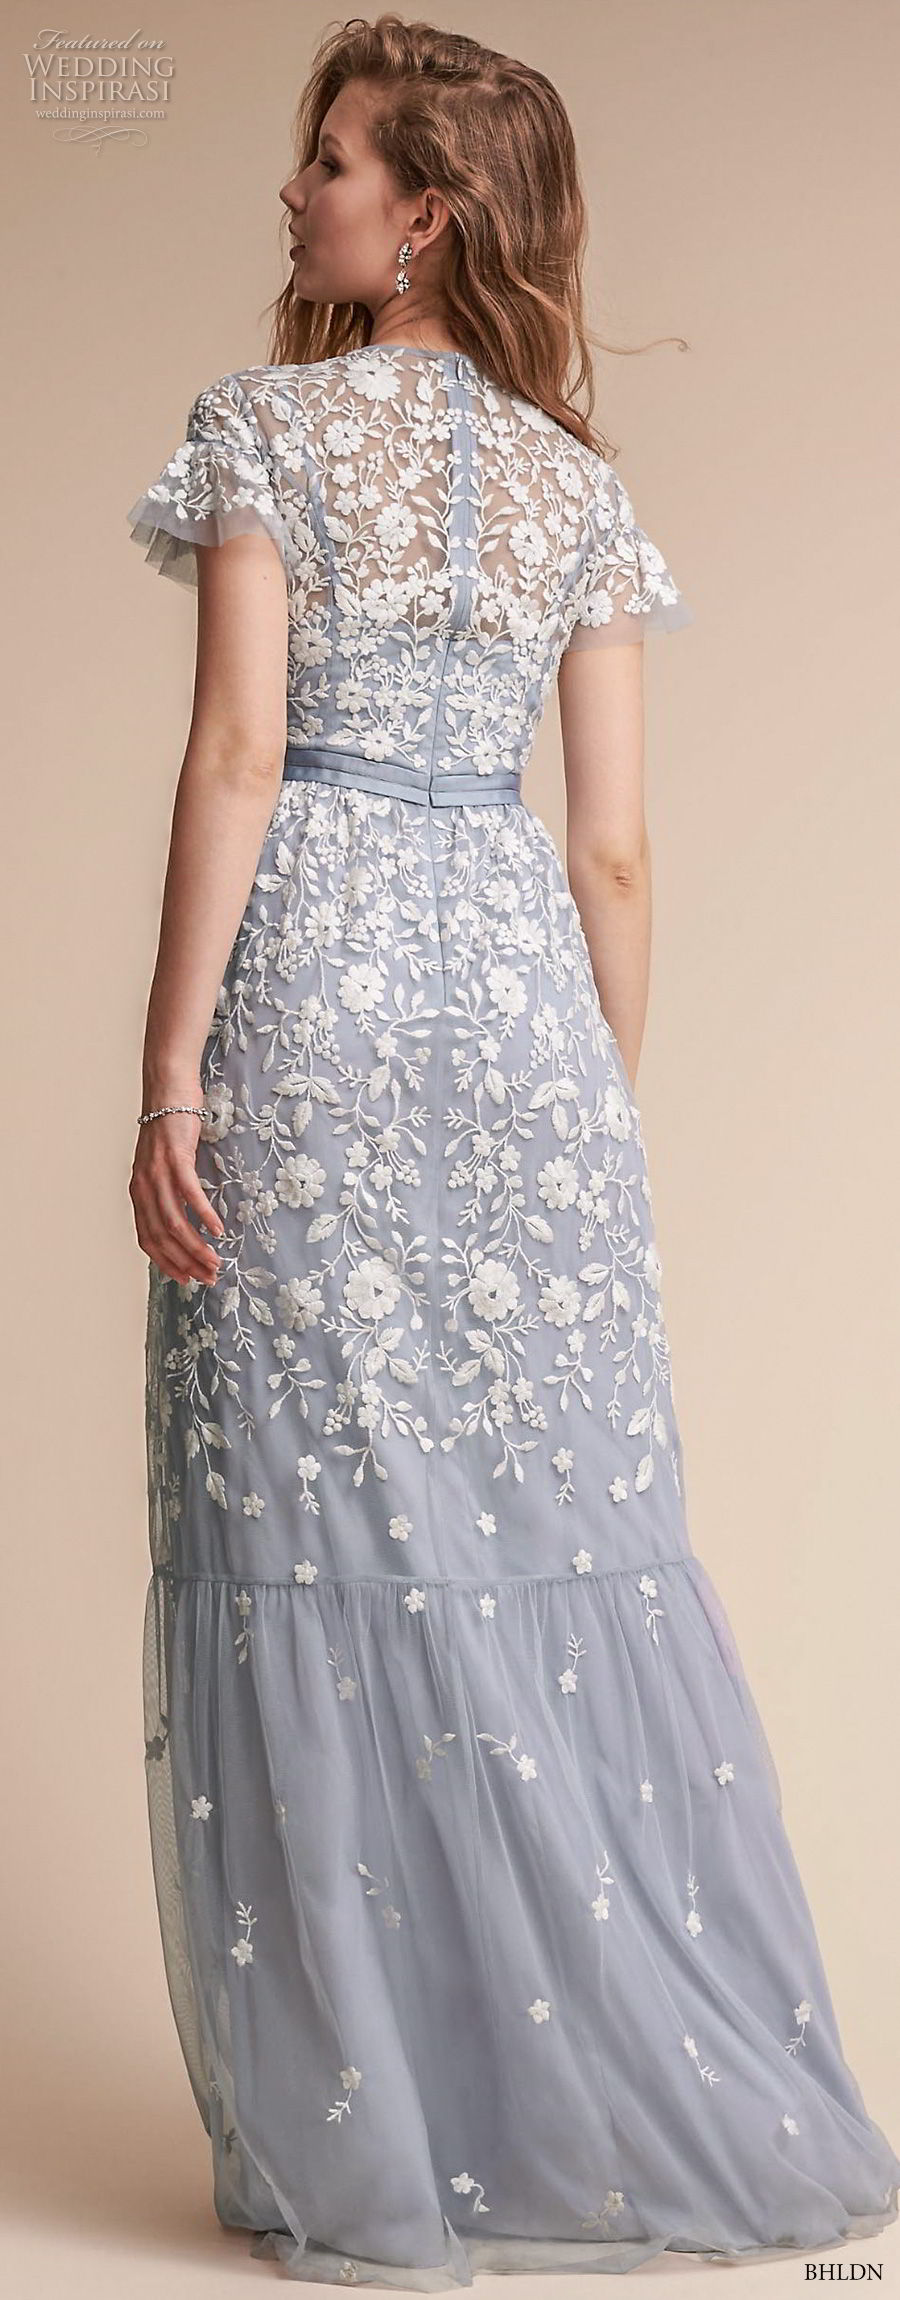 bhldn fall 2017  americana bridal short sleeves jewel neck full embellishment romantic blue color soft a  line wedding dress covered lace back sweep train (meadow) bv